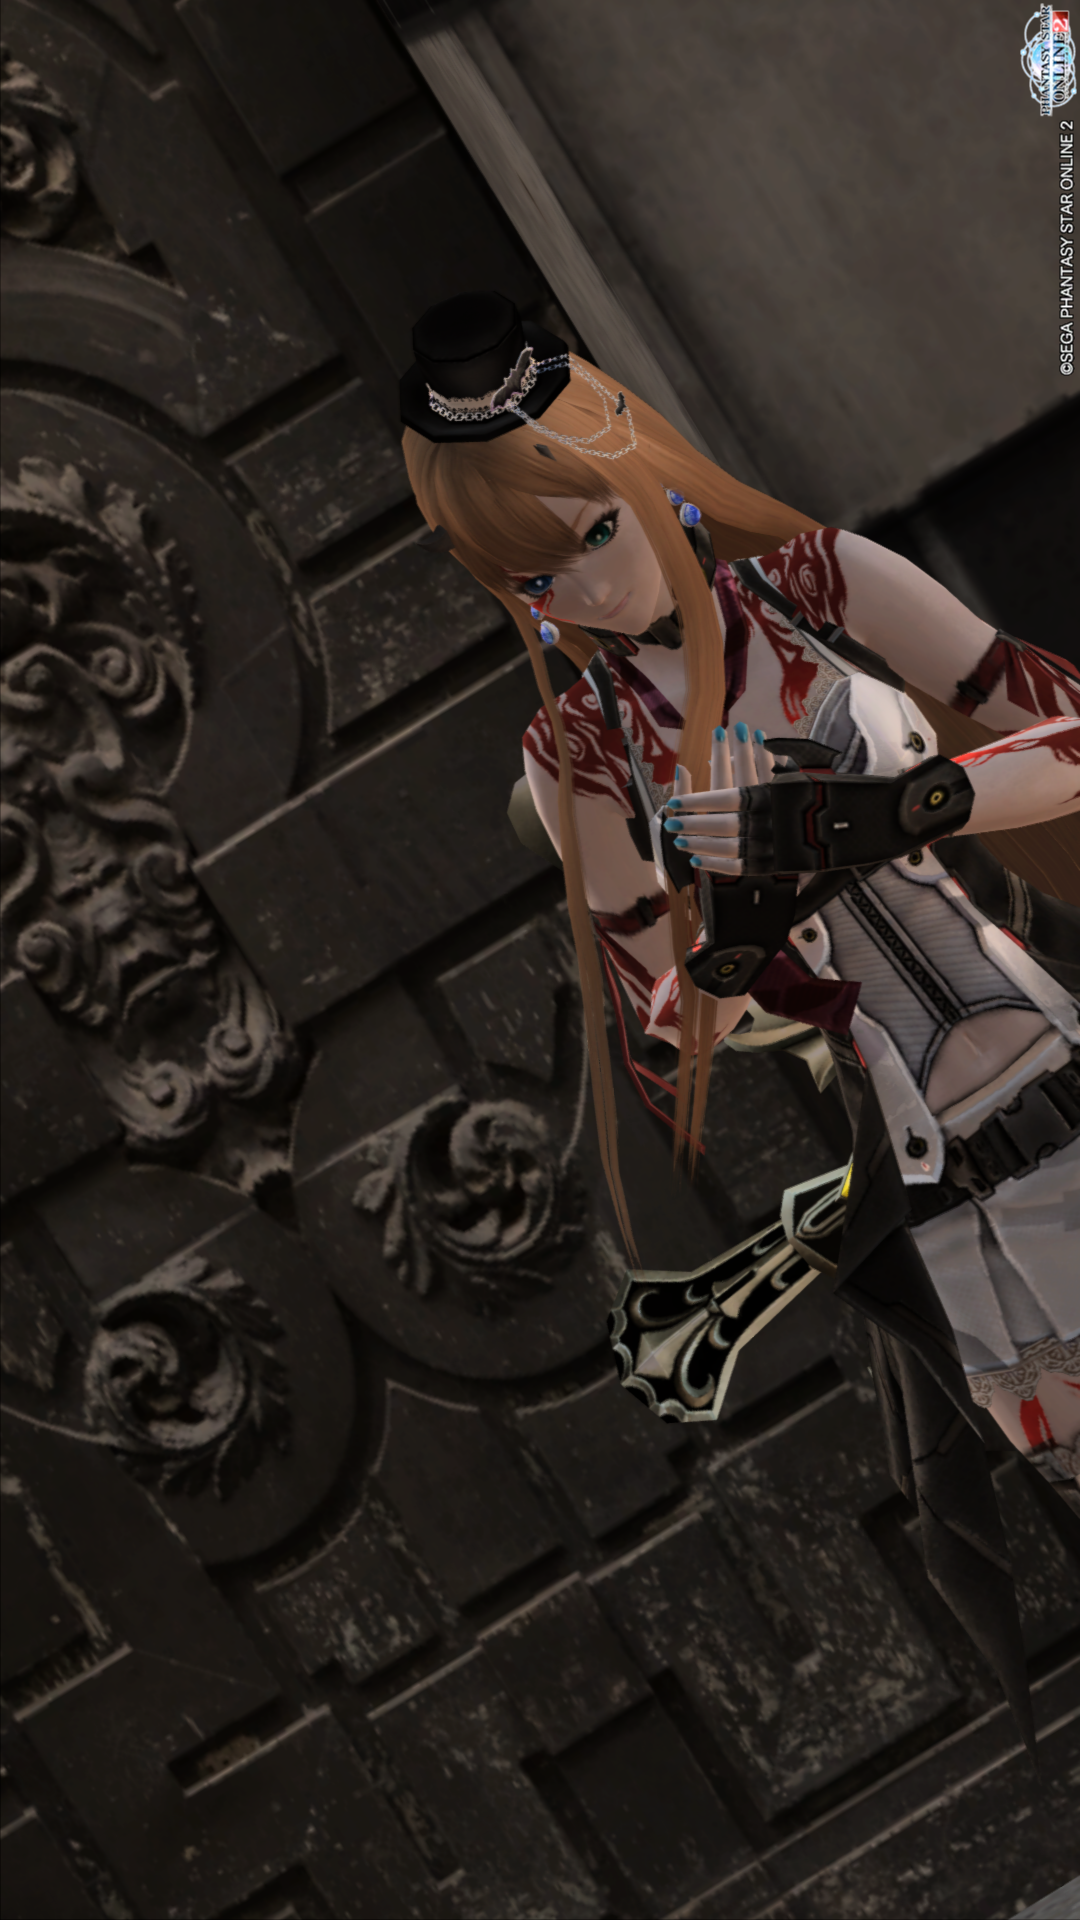 pso20150126_233733_013.png